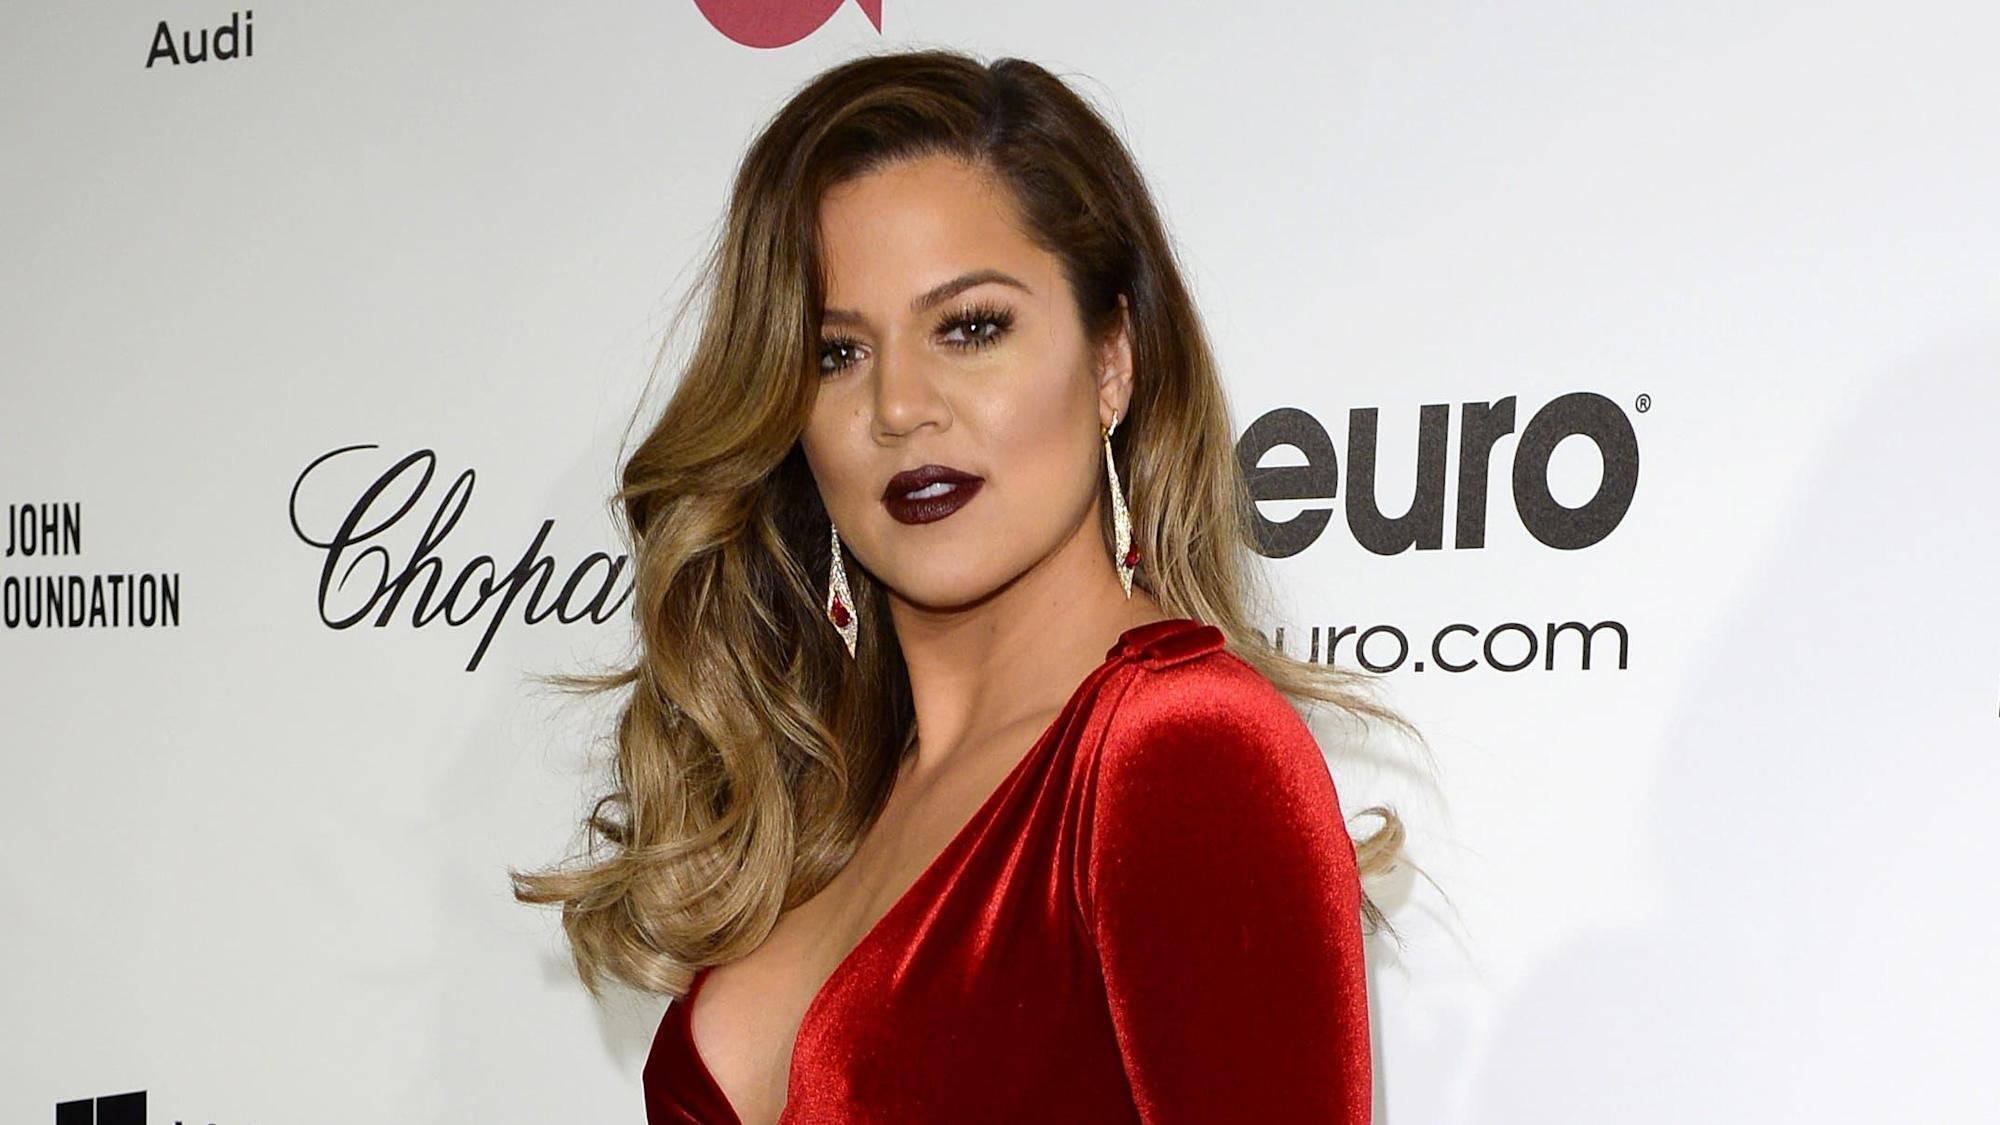 KUWTK: Khloe Kardashian 'frustrated' by Kourtney's reluctance to share love life